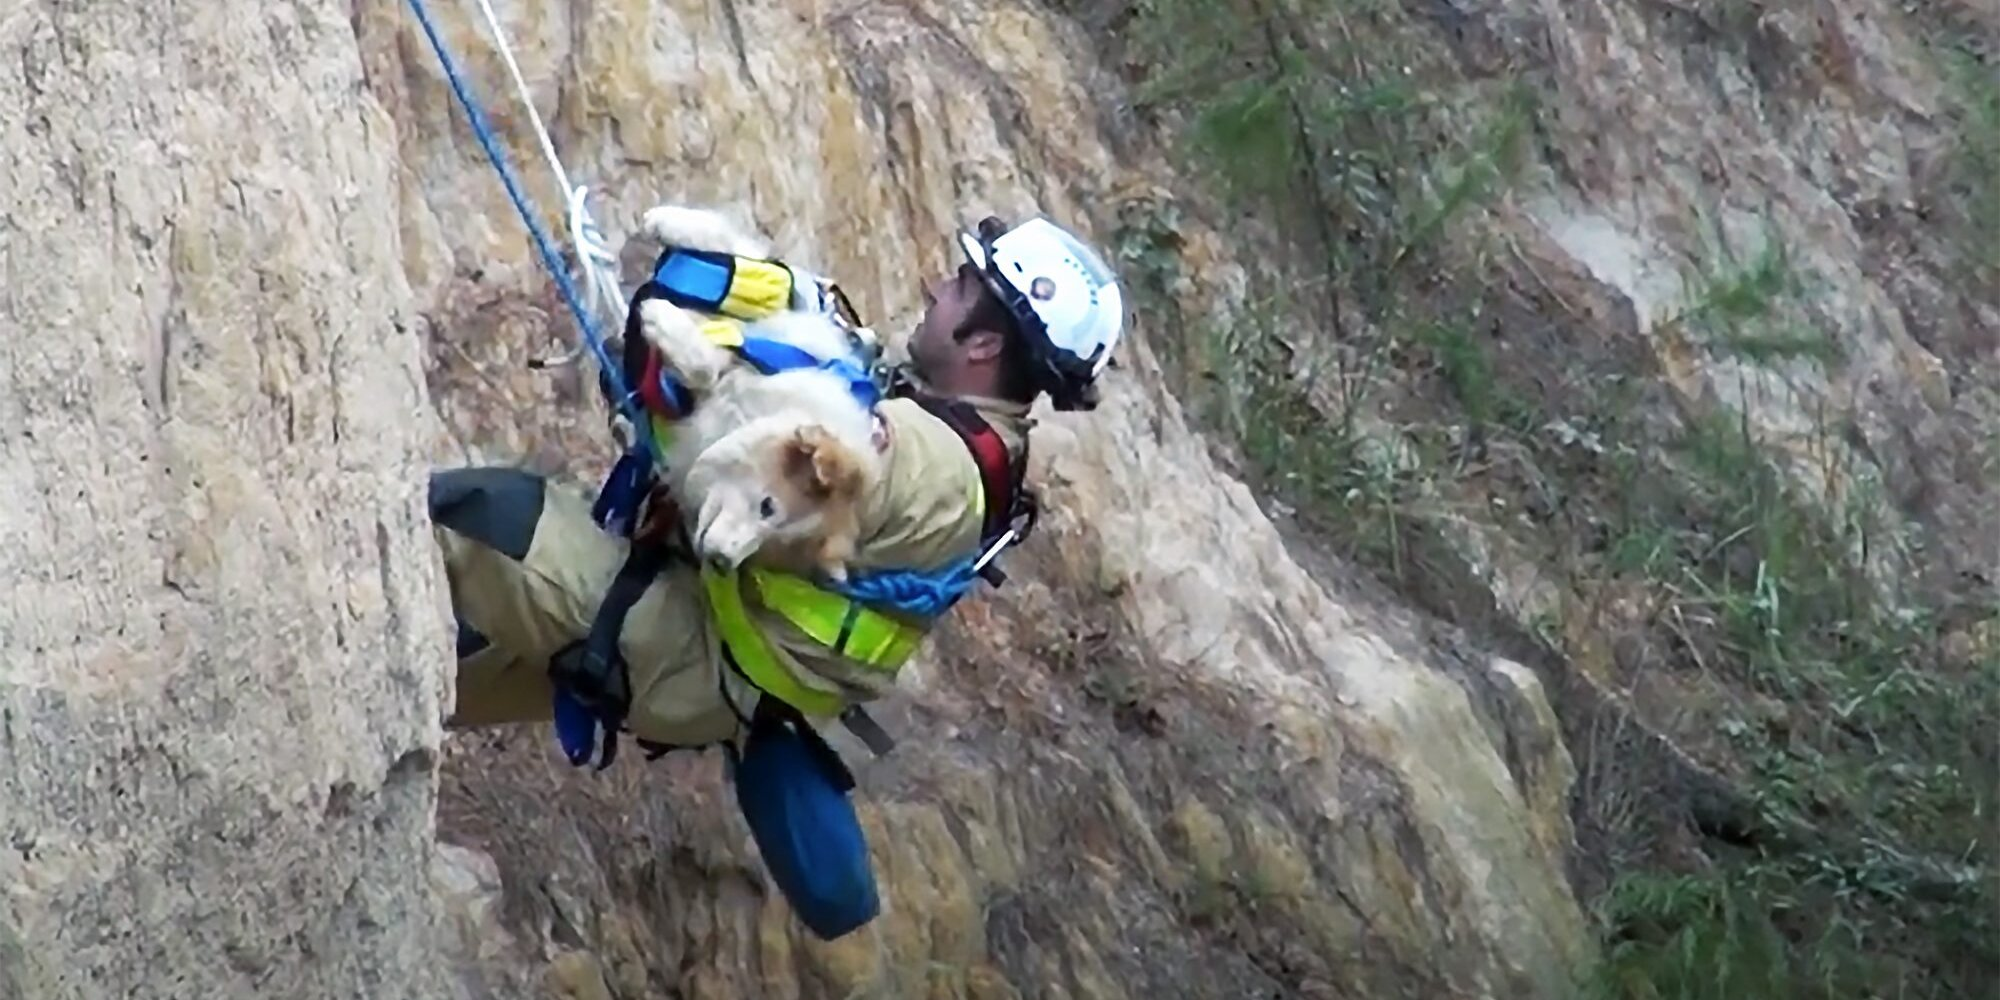 Man and Dog Rescued by Fire Department From 50-Foot Ravine